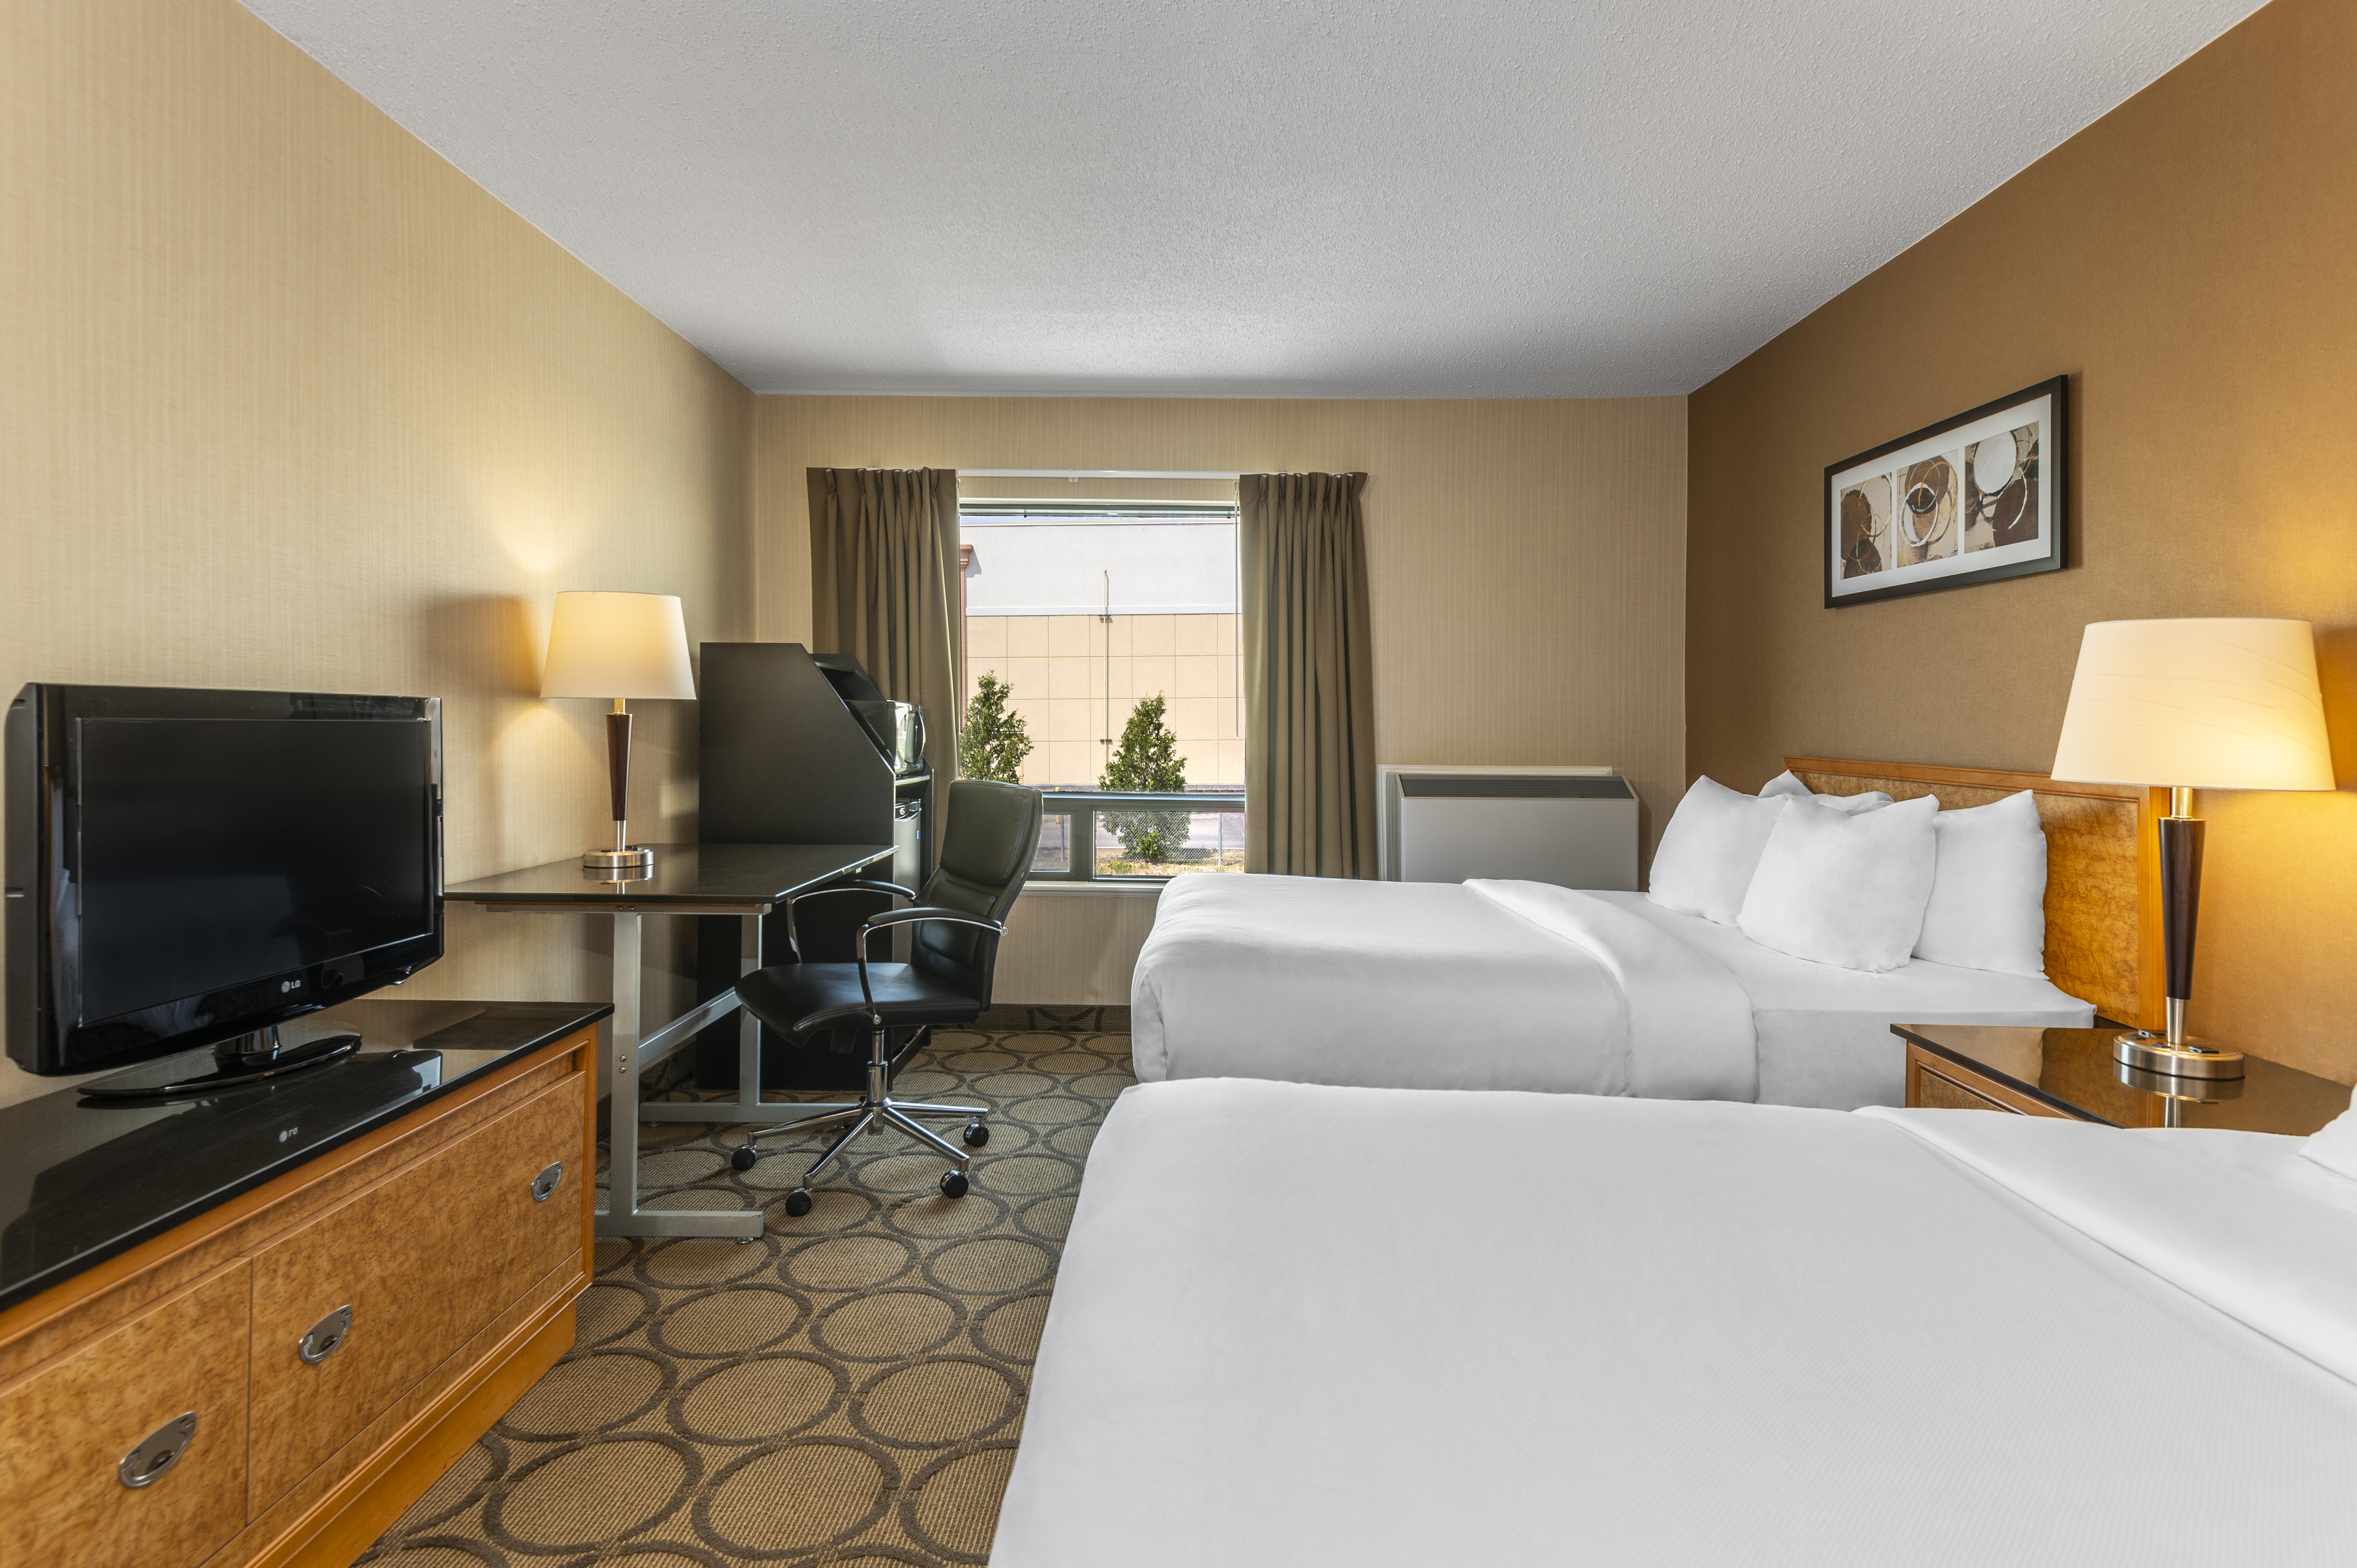 https://www.hotelsbyday.com/_data/default-hotel_image/5/26069/guestroom-with-two-pillowtop-beds-upper-flr.jpg